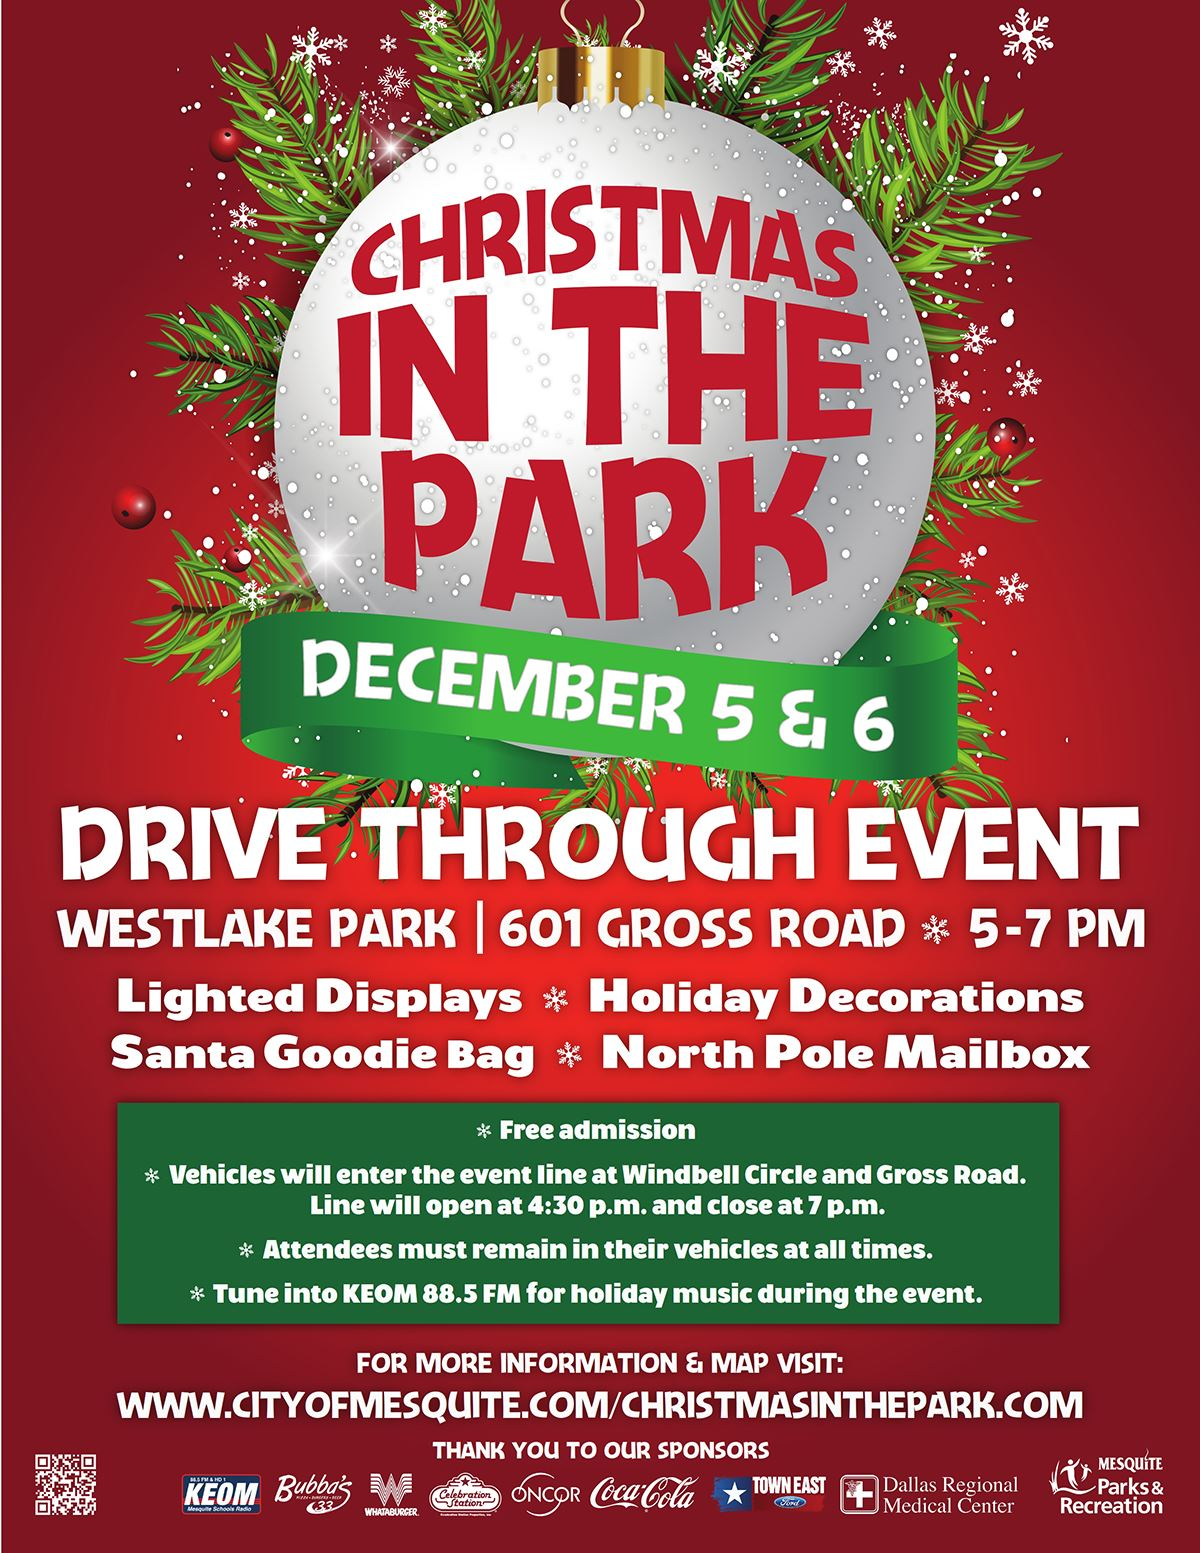 2020 Christmas in the Park - Mesquite TX